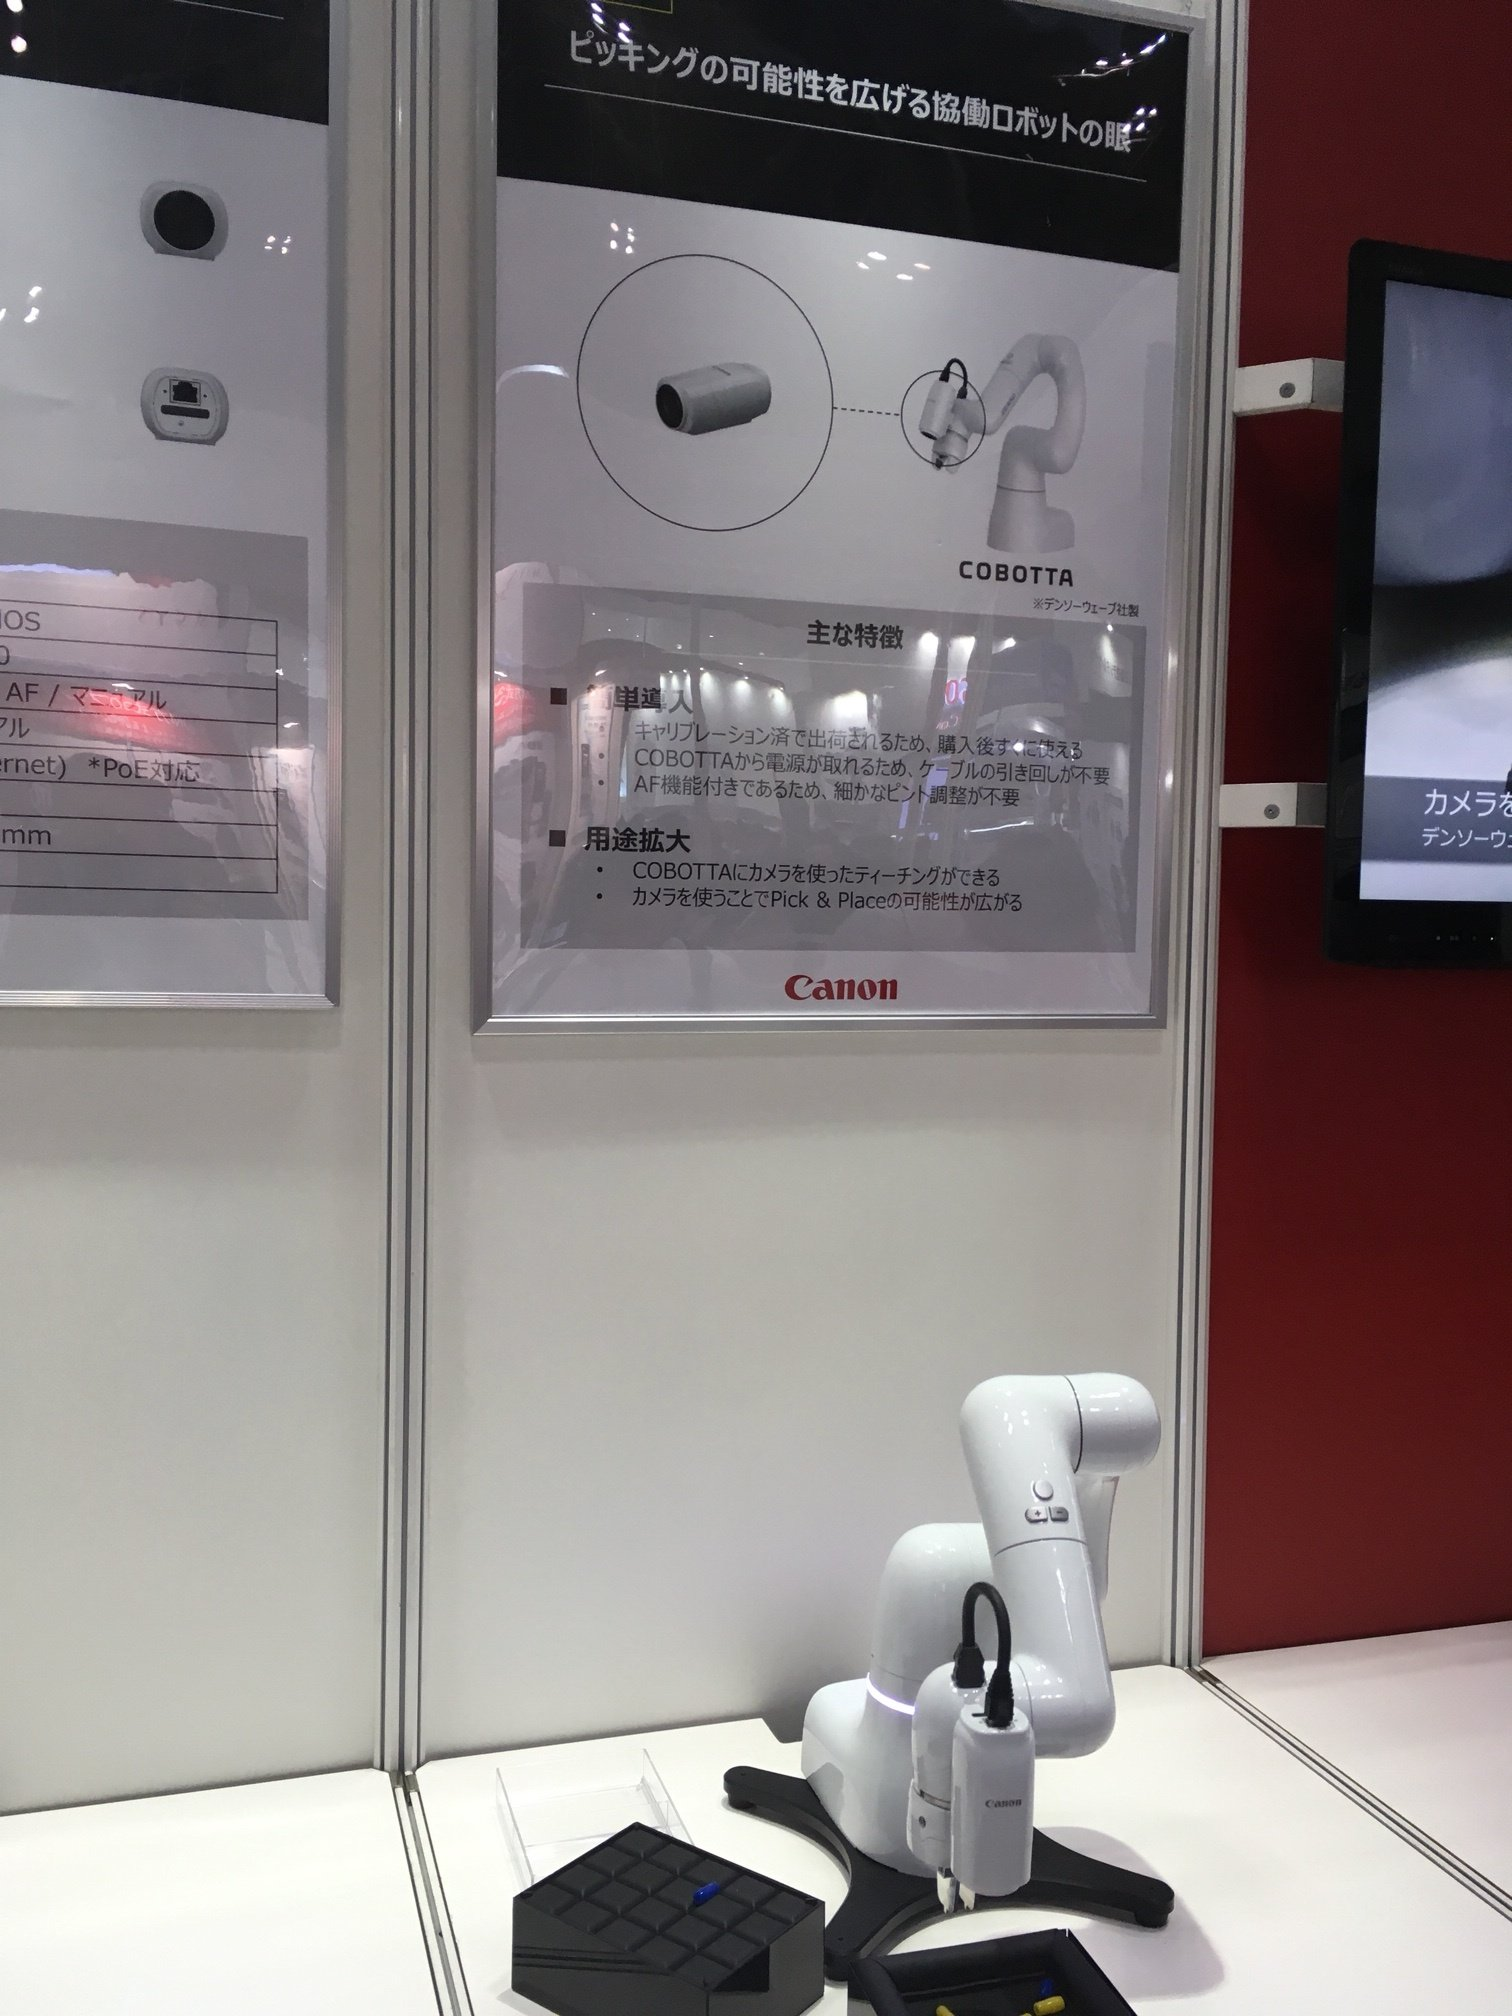 Denso cobot with Canon integrated vison